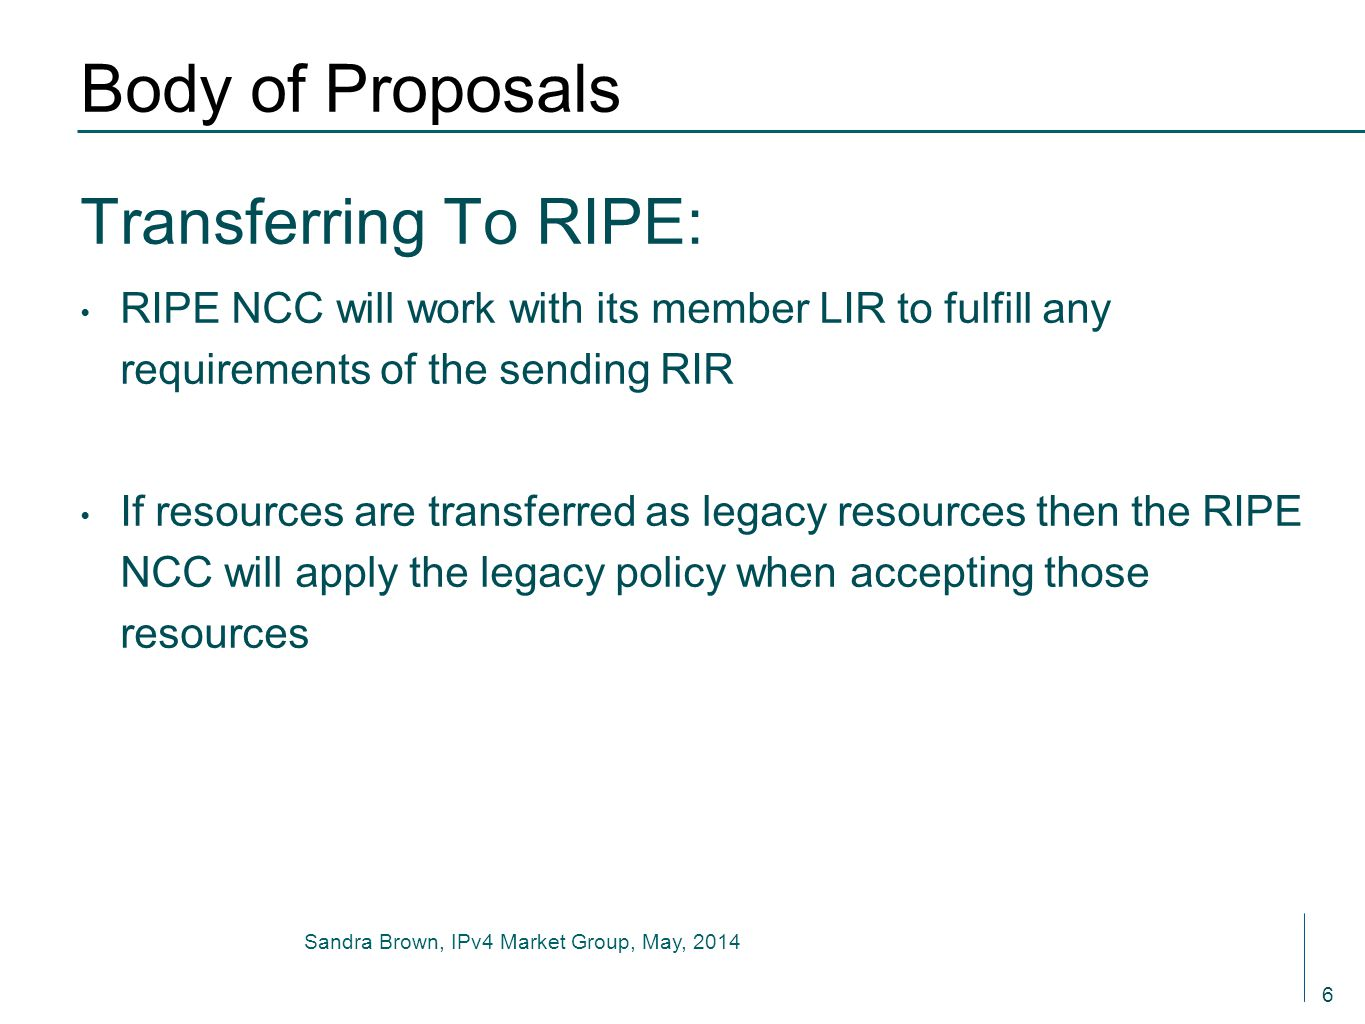 Sandra Brown, IPv4 Market Group, May, 2014 Body of Proposals Transferring To RIPE: RIPE NCC will work with its member LIR to fulfill any requirements